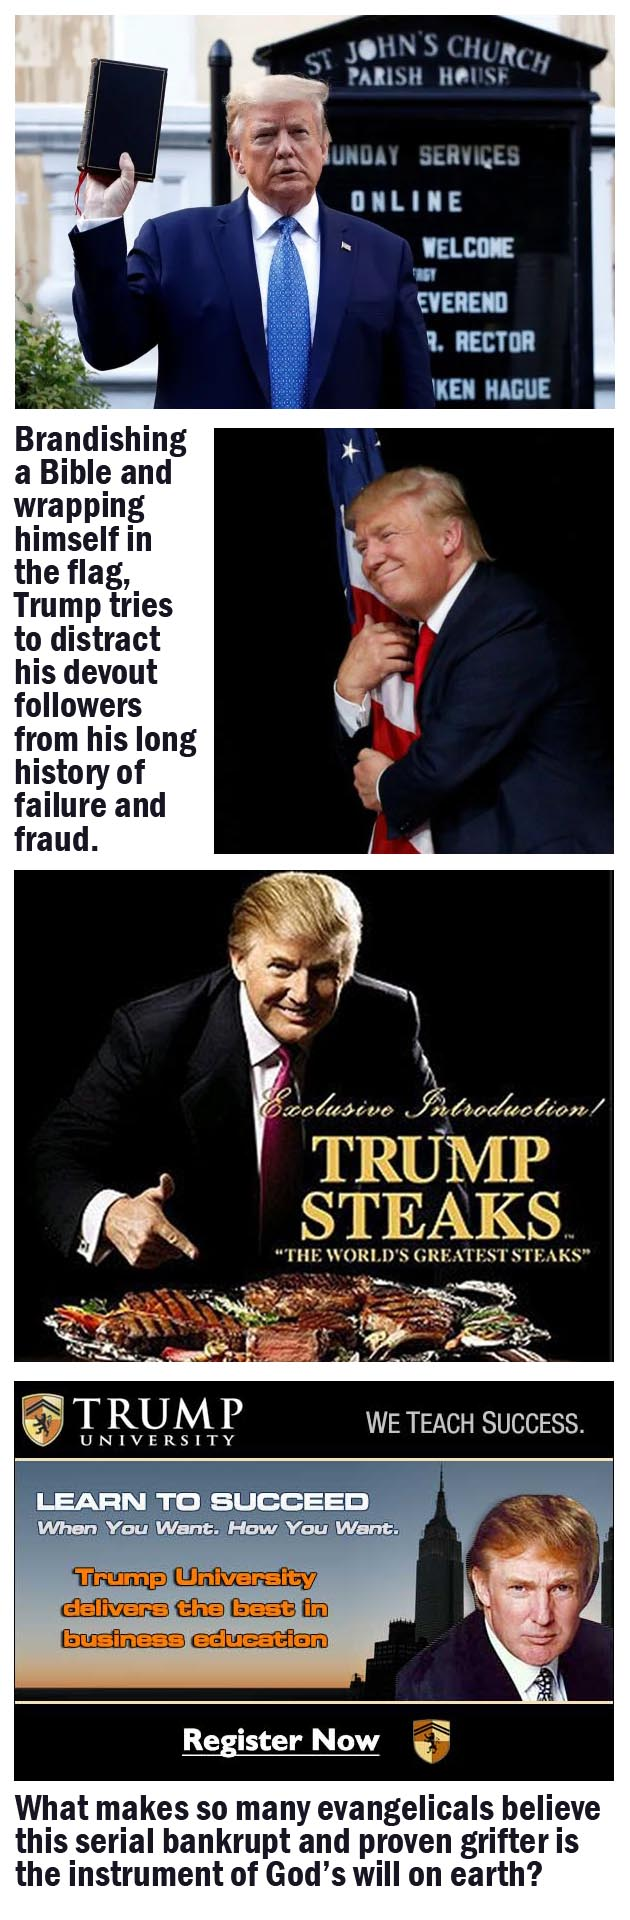 Brandishing a Bible and wrapping himself in the flag, Trump tries to distract his devout followers from his long history of failure and fraud.